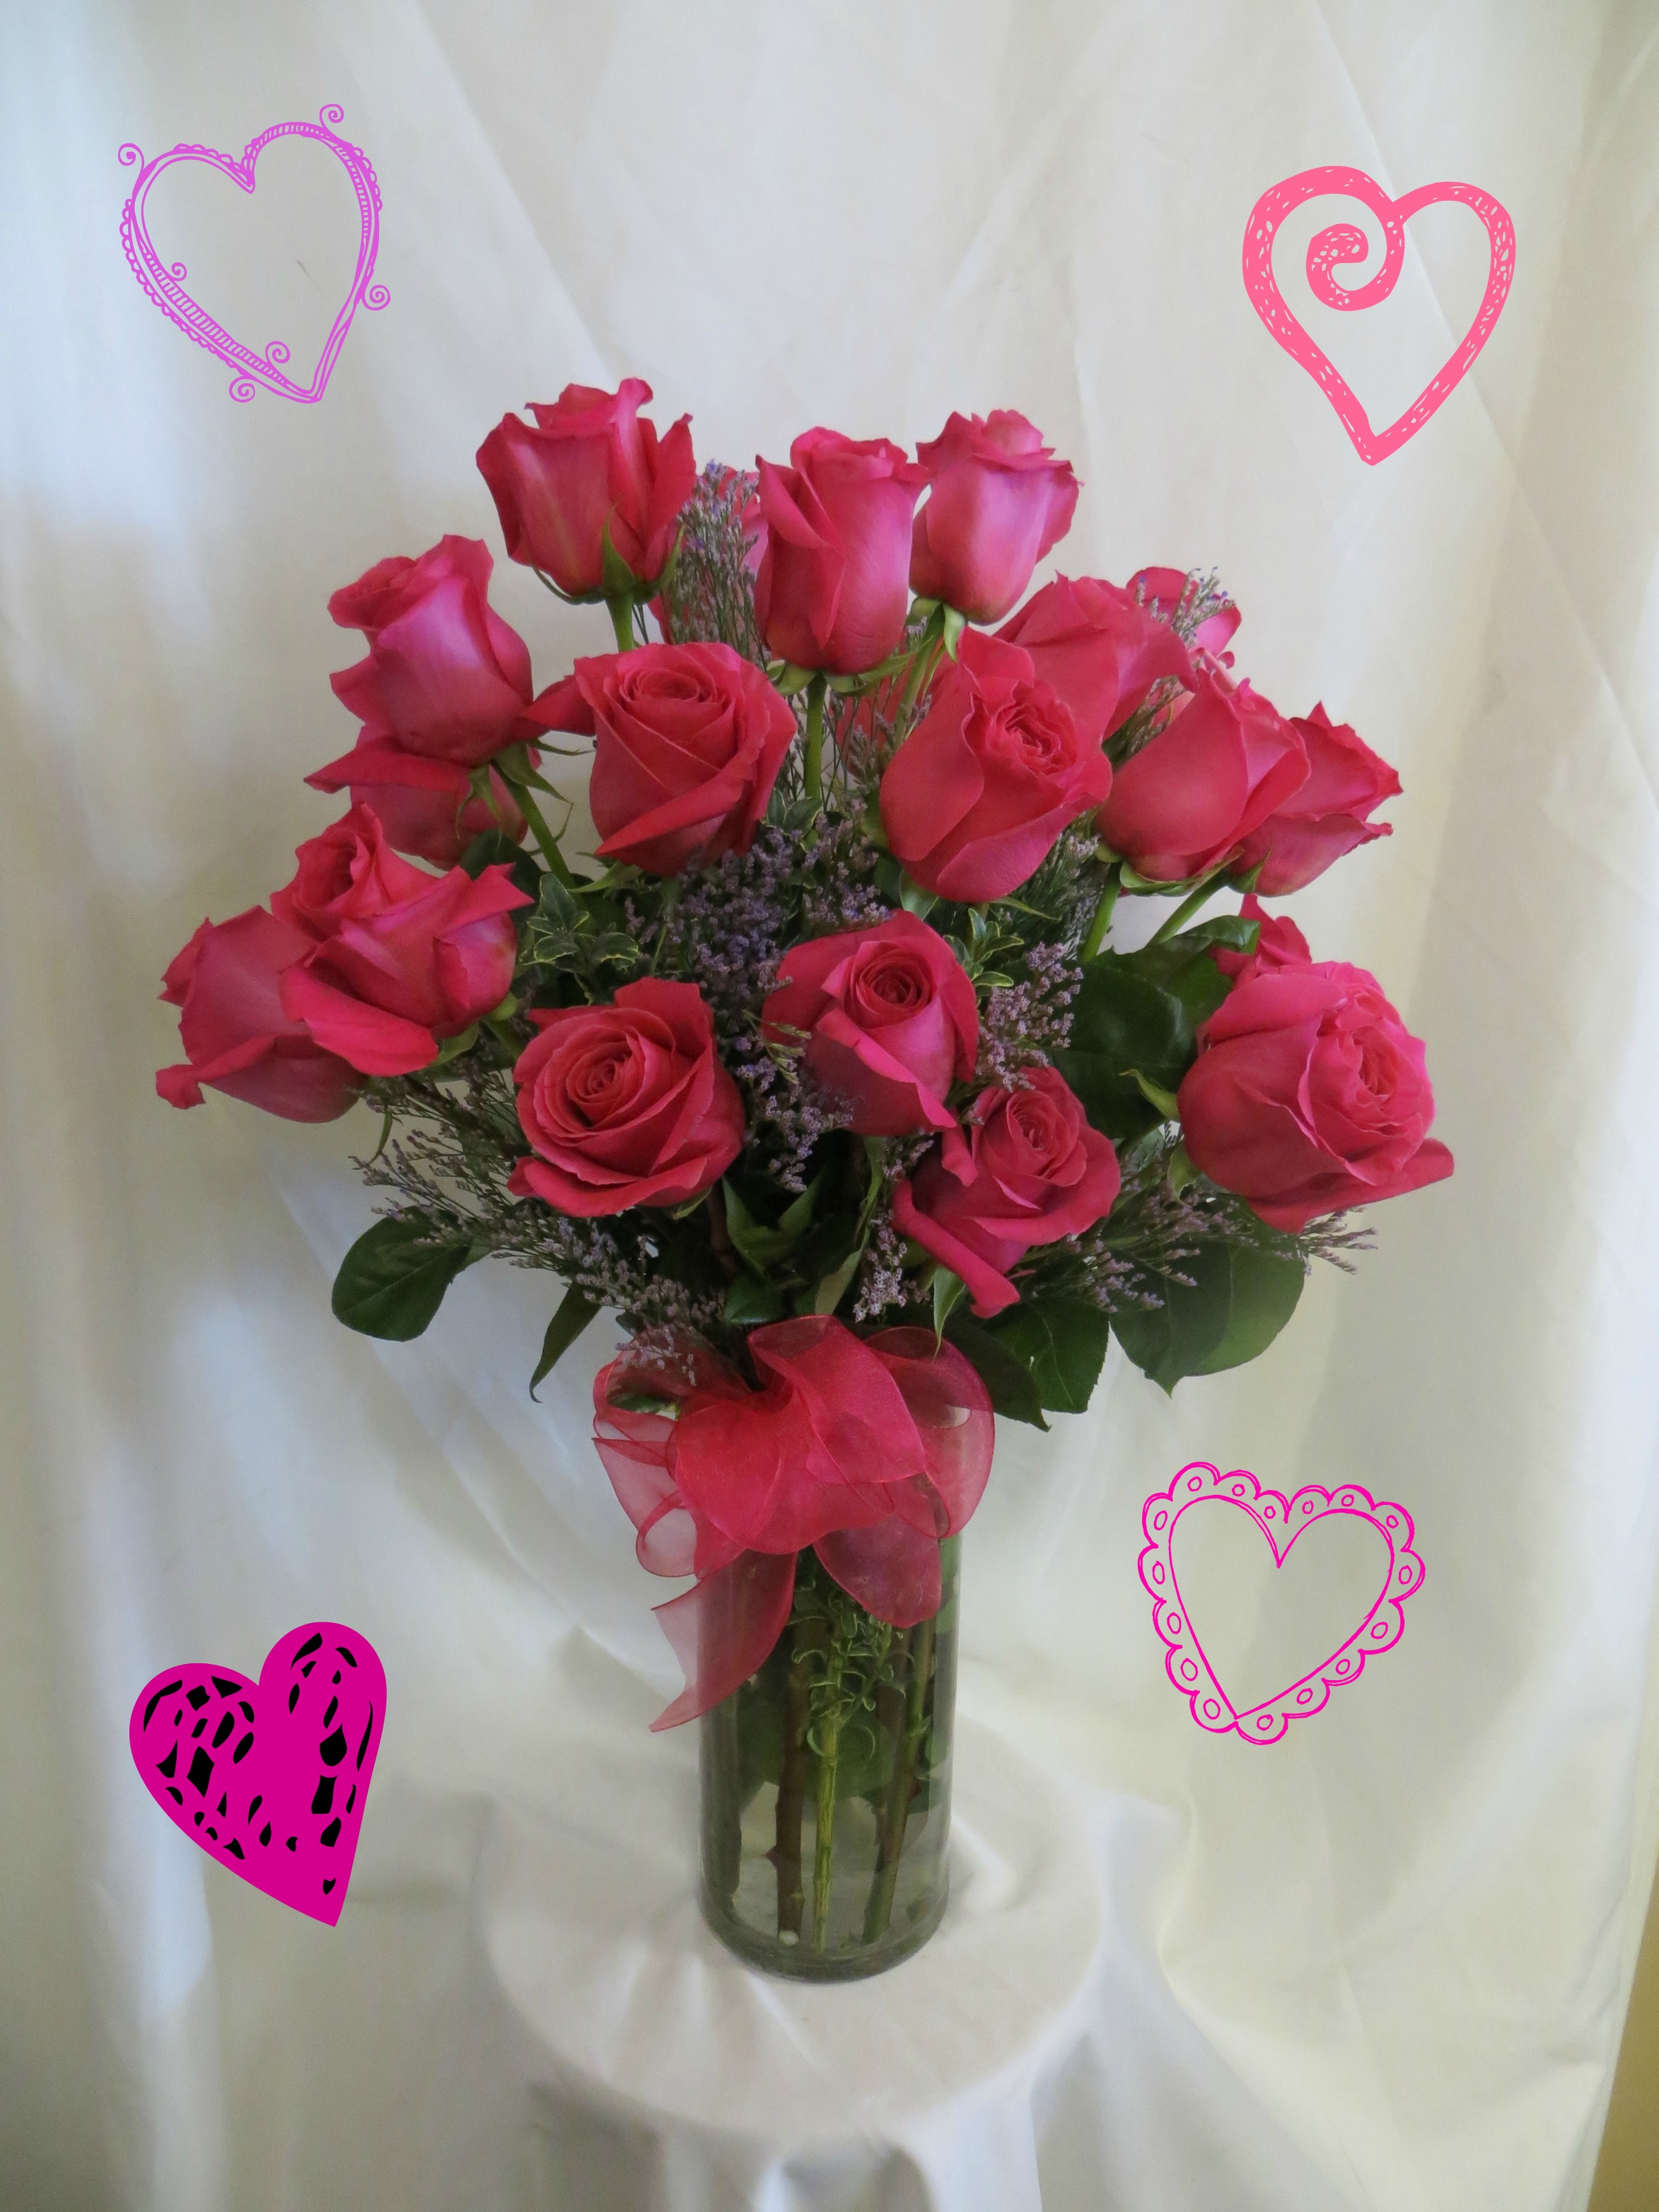 5 romantic ideas for couples plus roses for valentines day for Buying roses on valentines day